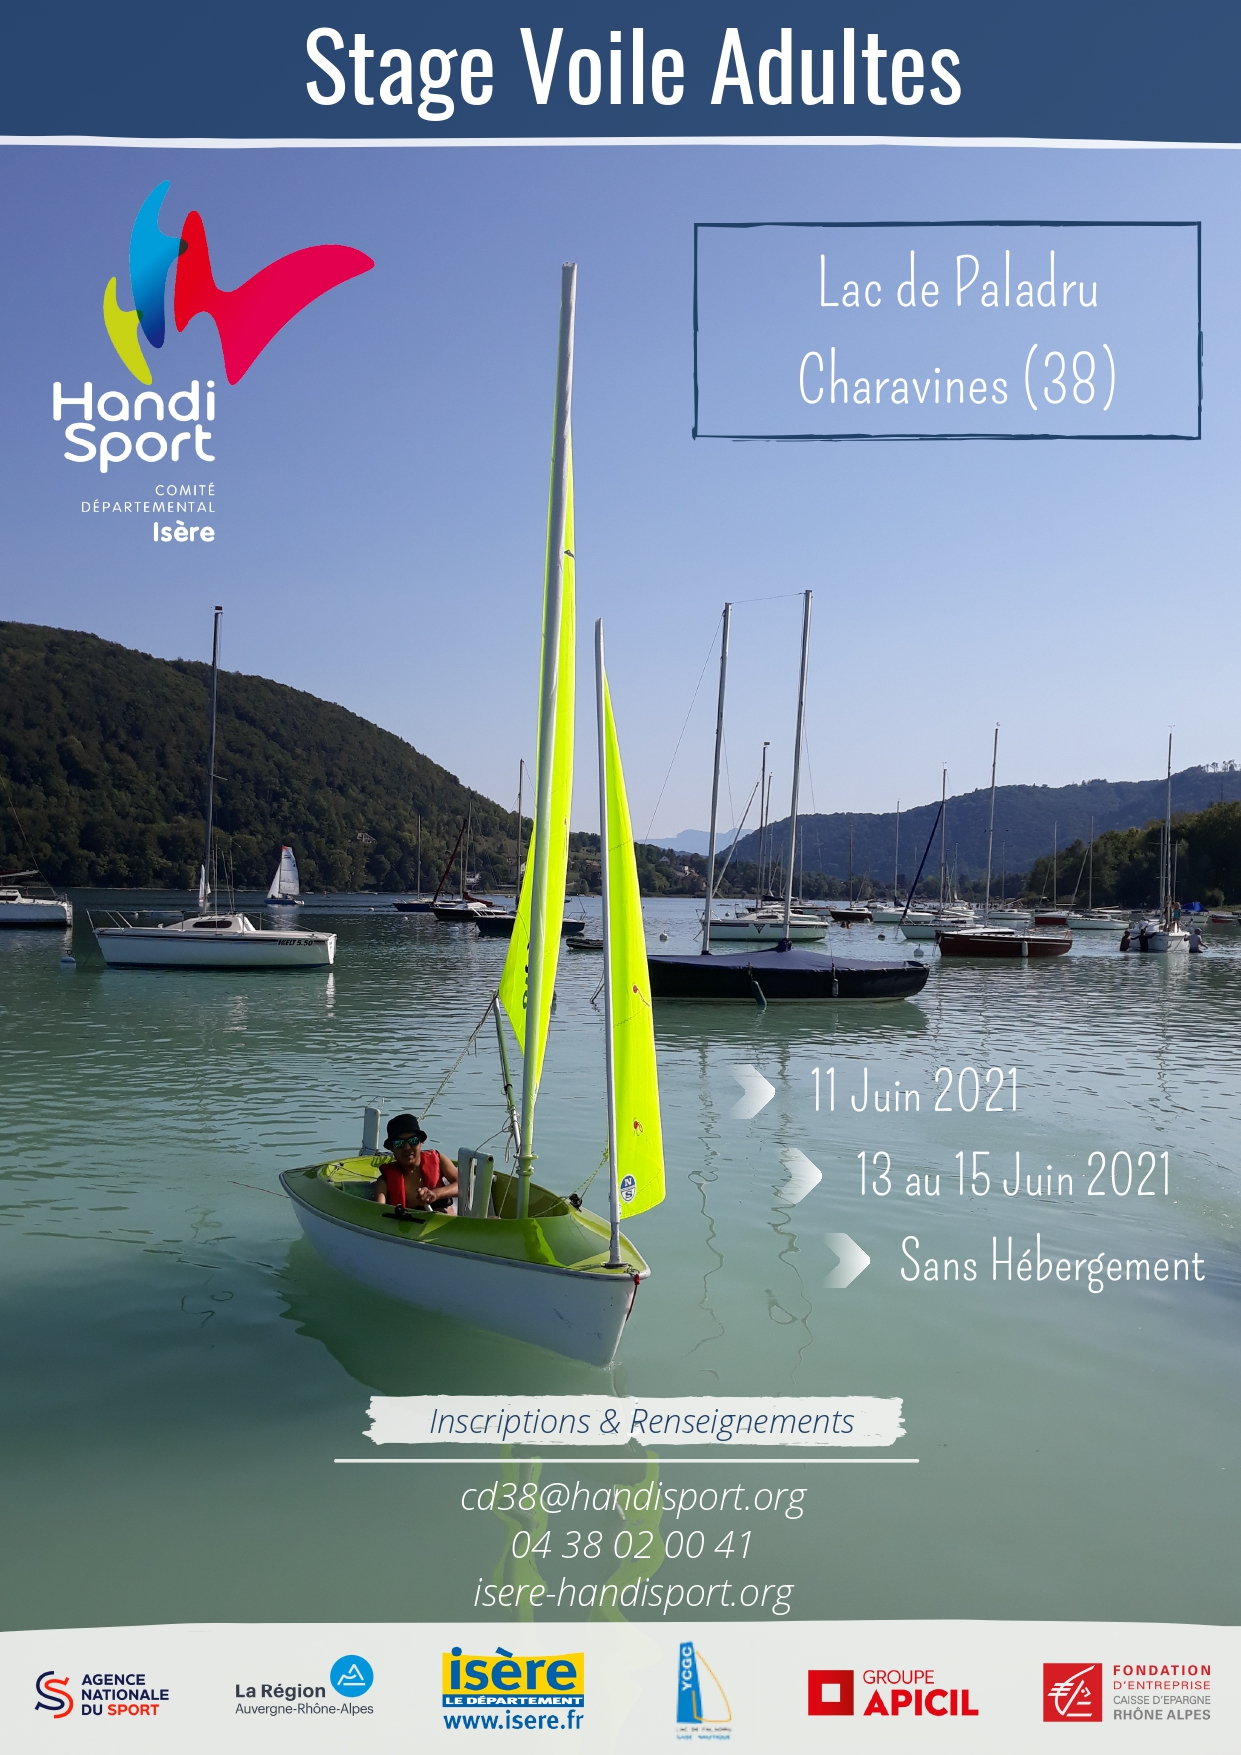 Stage Voile Adultes 2021